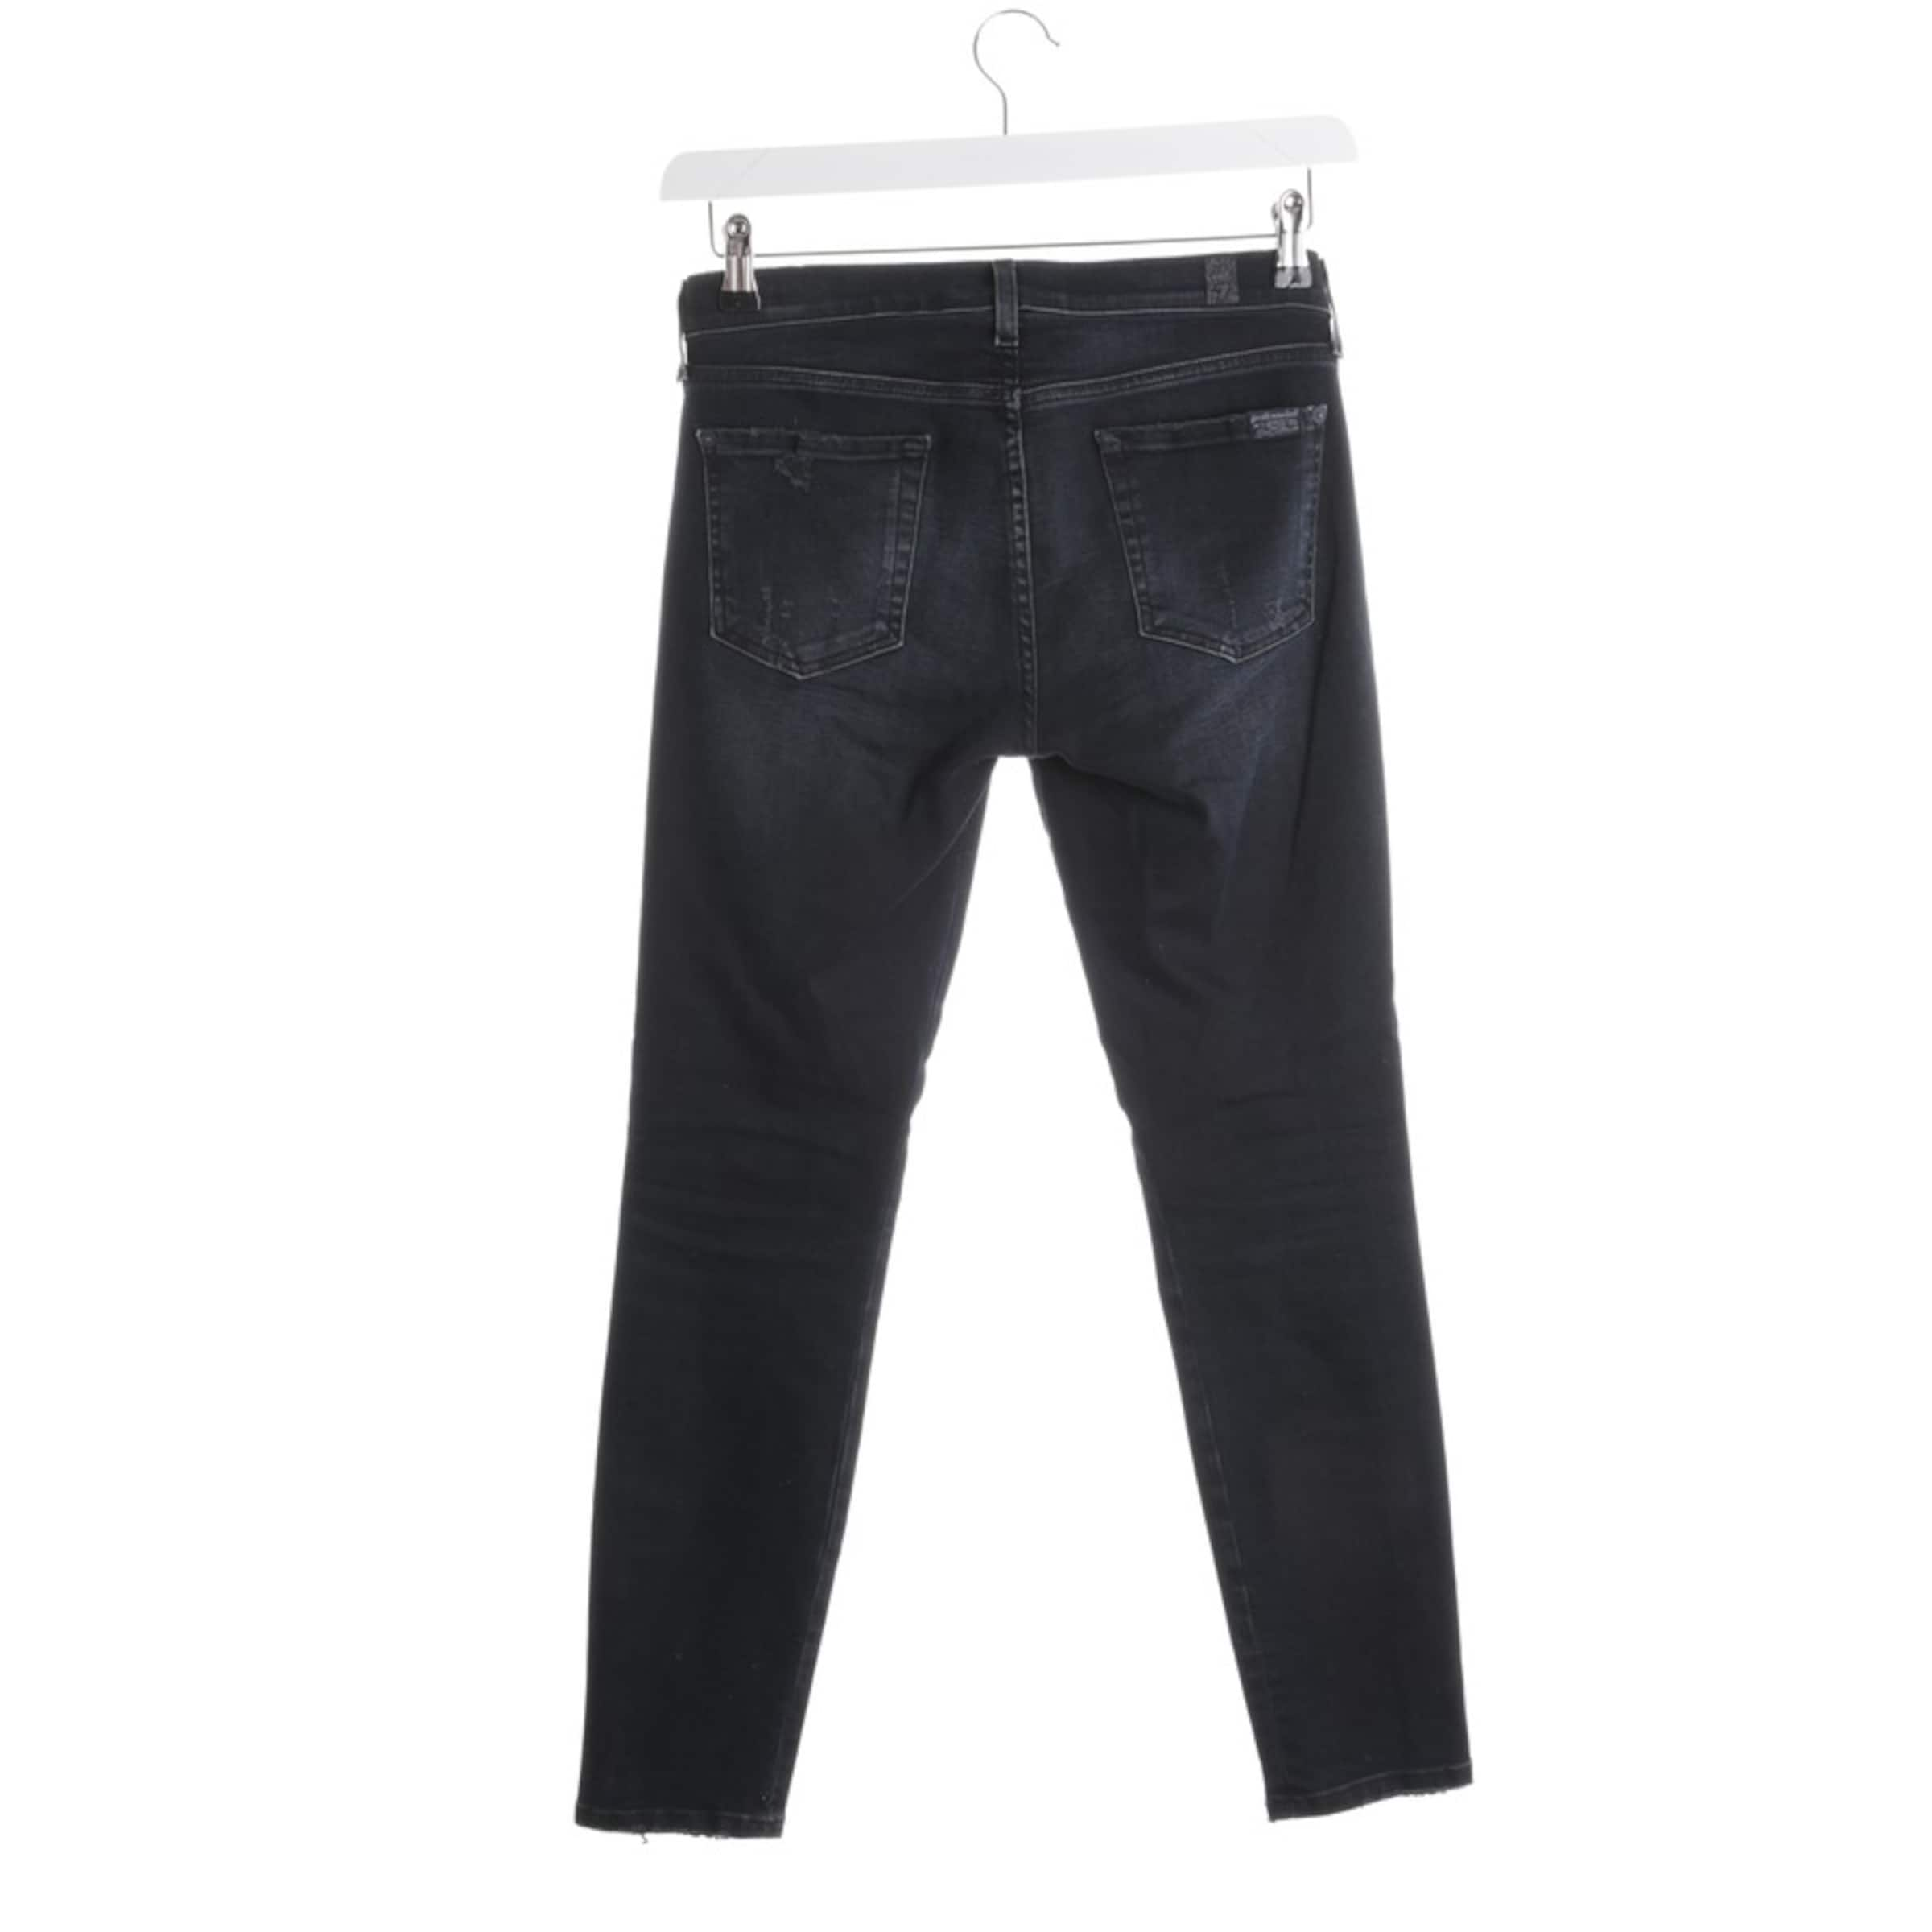 7 for all mankind Jeans in w26 in dunkelblau